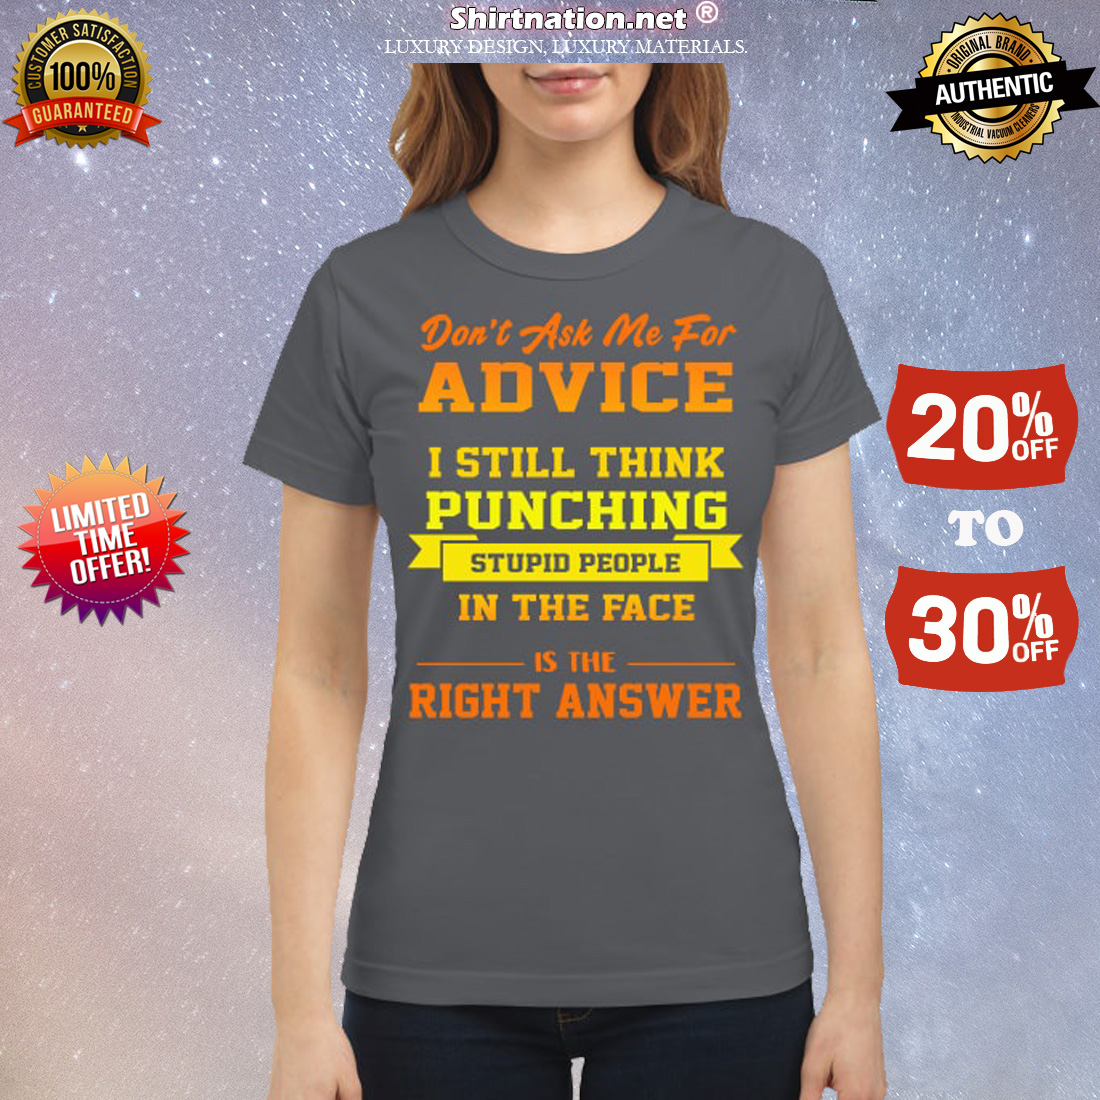 Don't ask me for advice I still think punching stupid people in the face is the right answer classic shirt